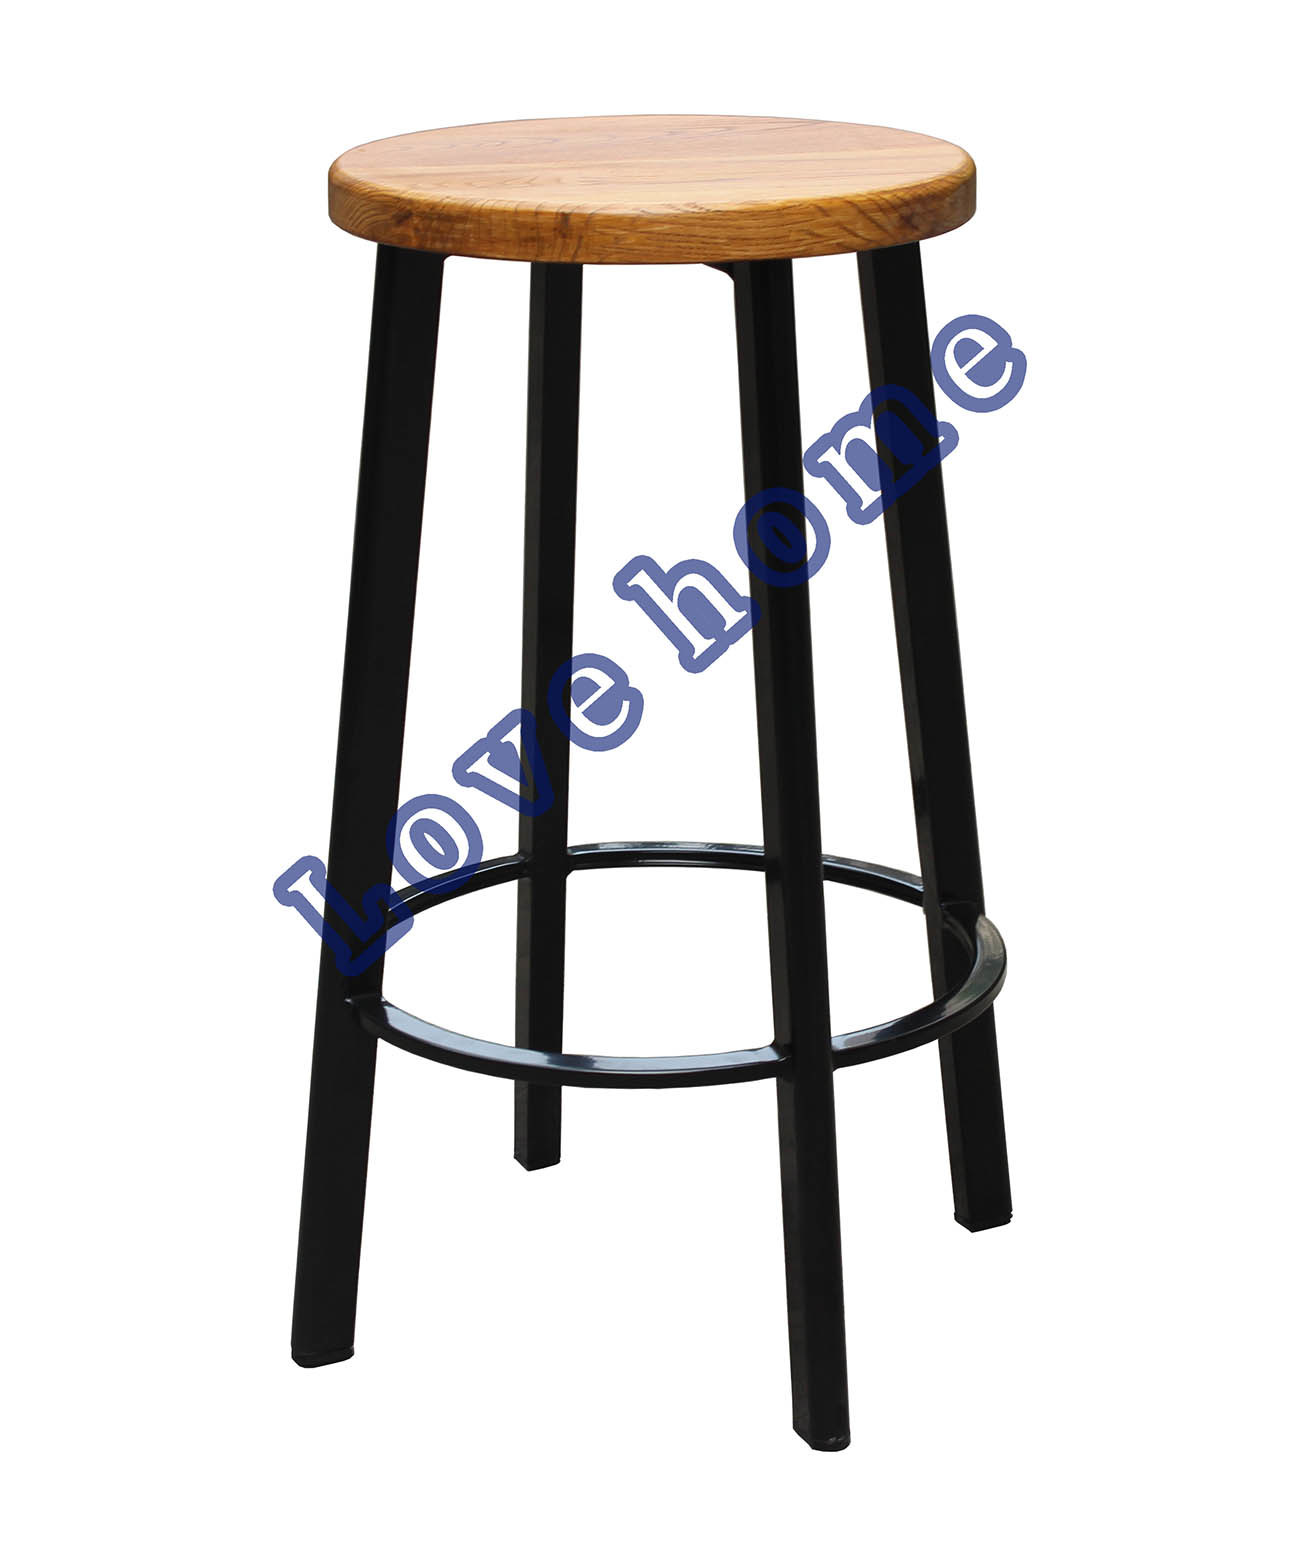 China Modern Replica Industrial Metal Restaurant Dining Furniture Stainless Steel Deja Vu 26 In